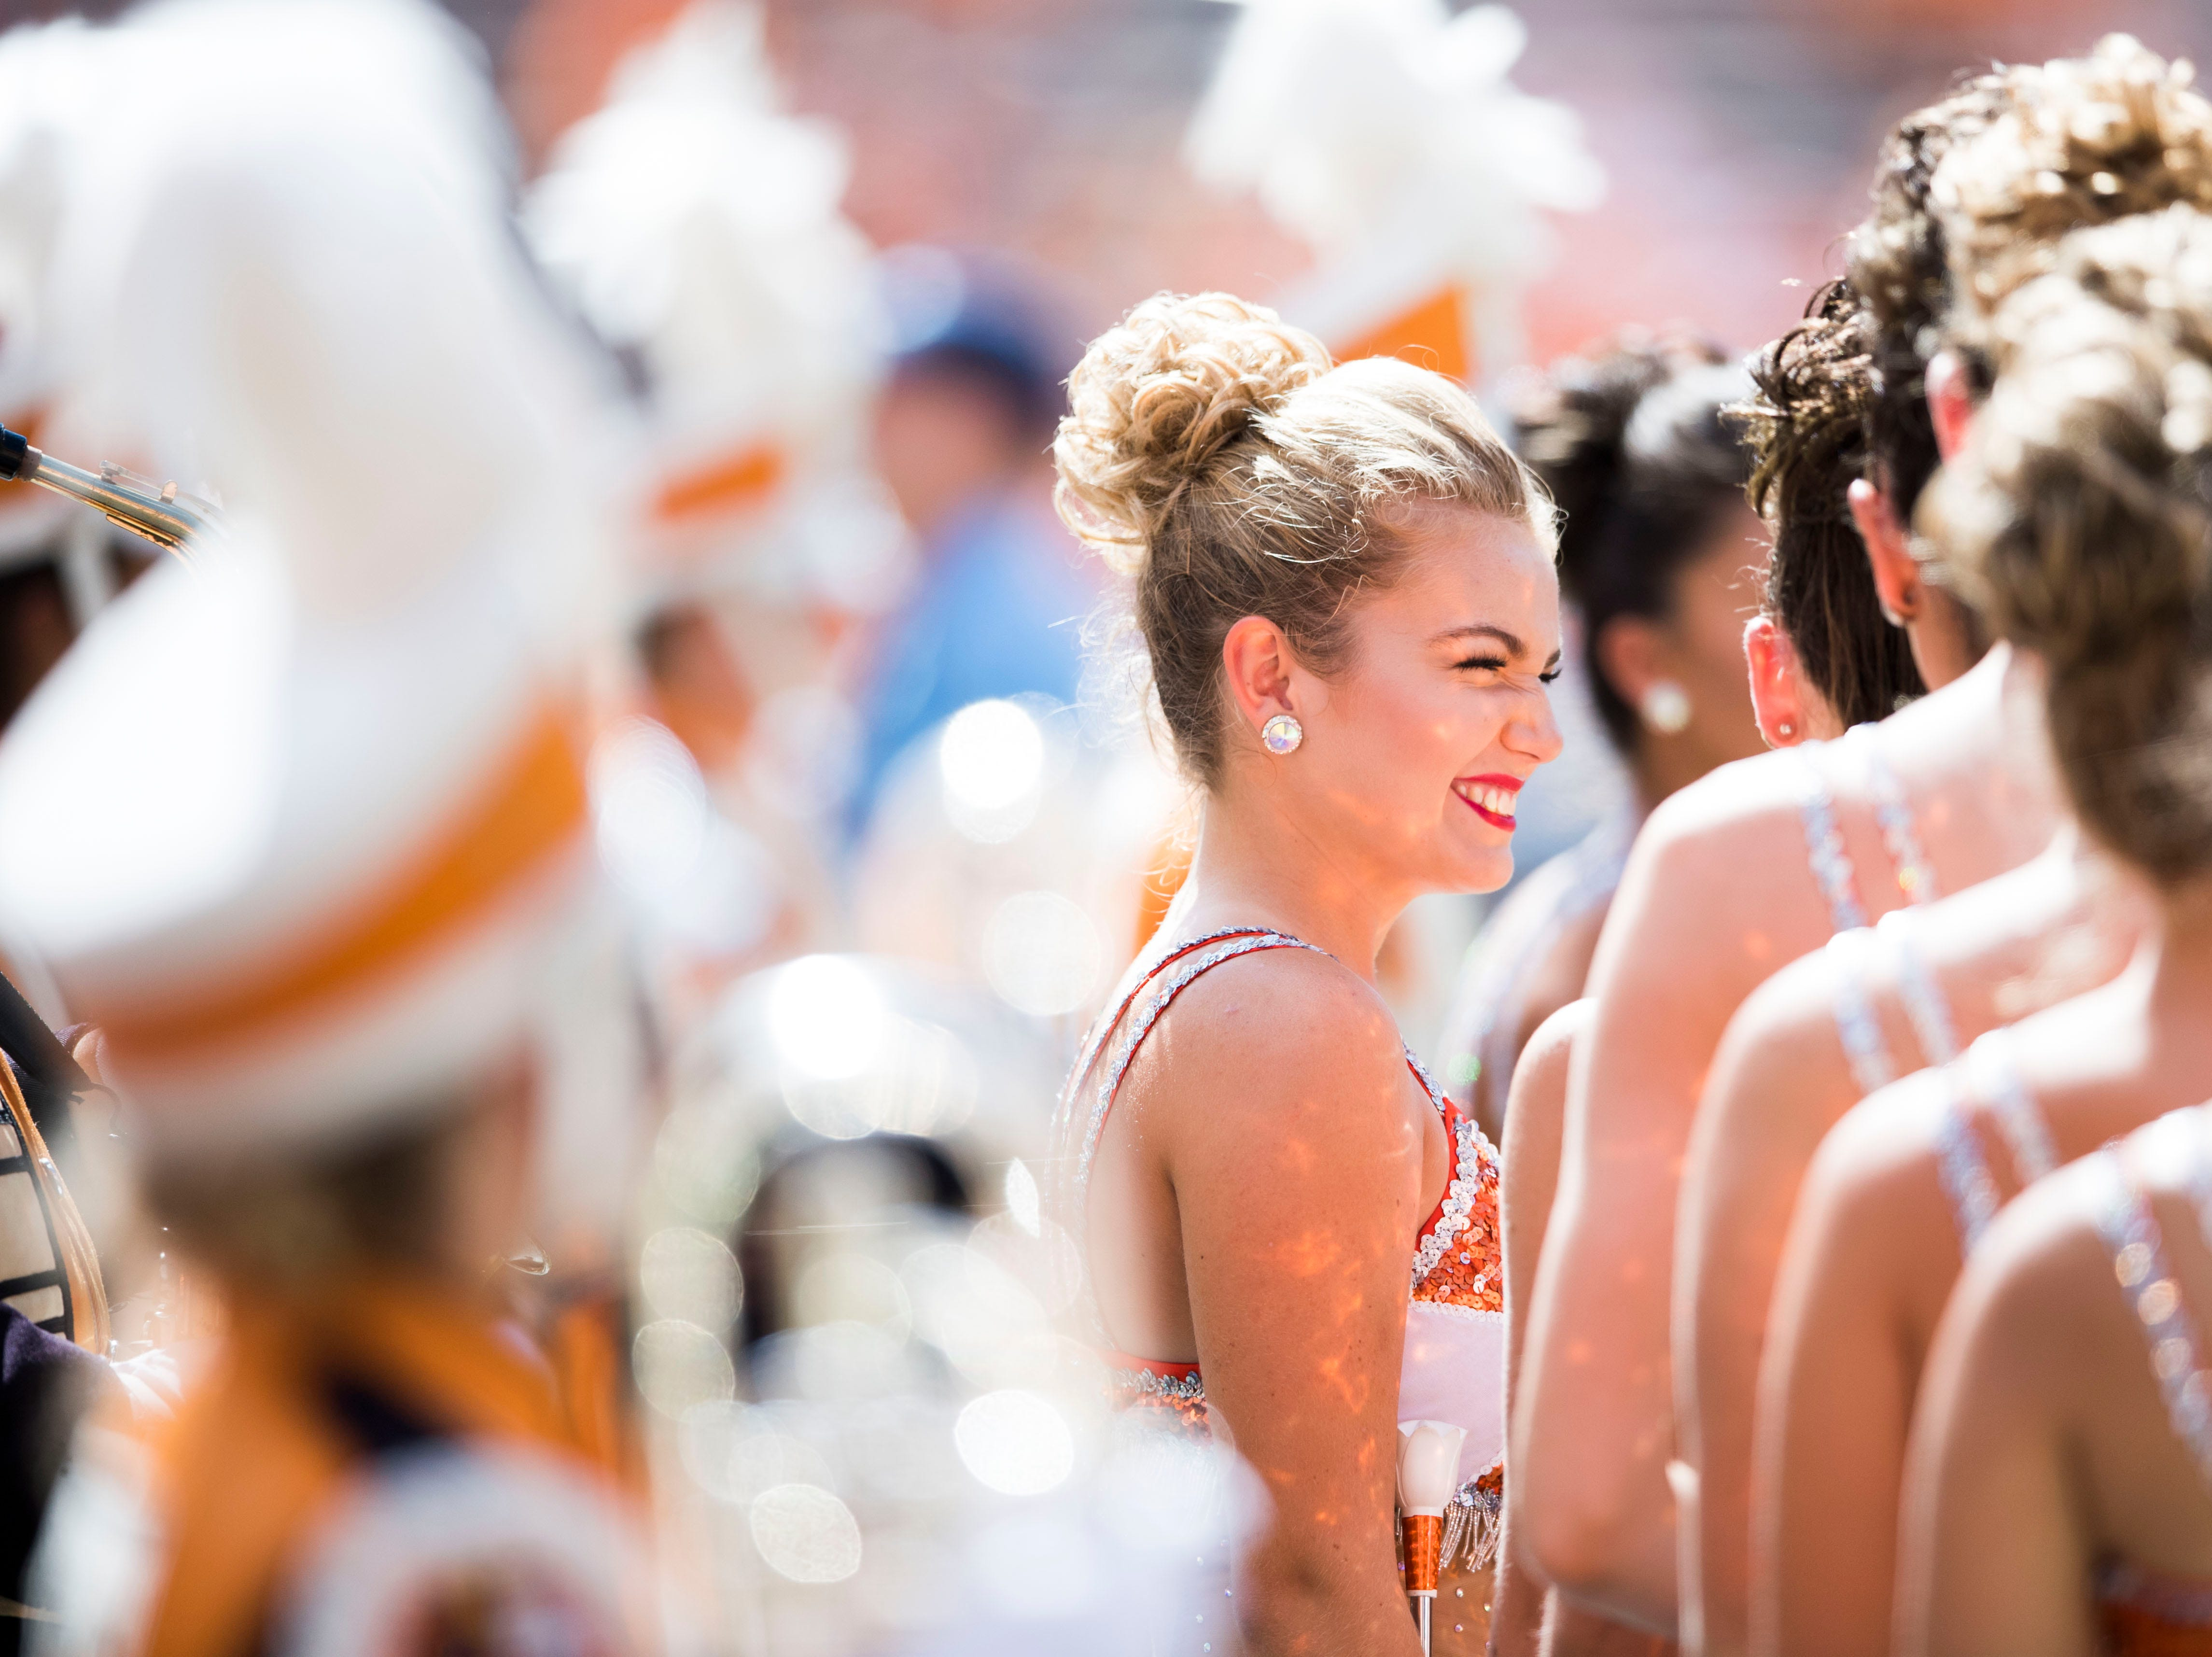 A UT majorette stands in sun before a game between UT and UTEP in Neyland Stadium Sept. 15, 2018.